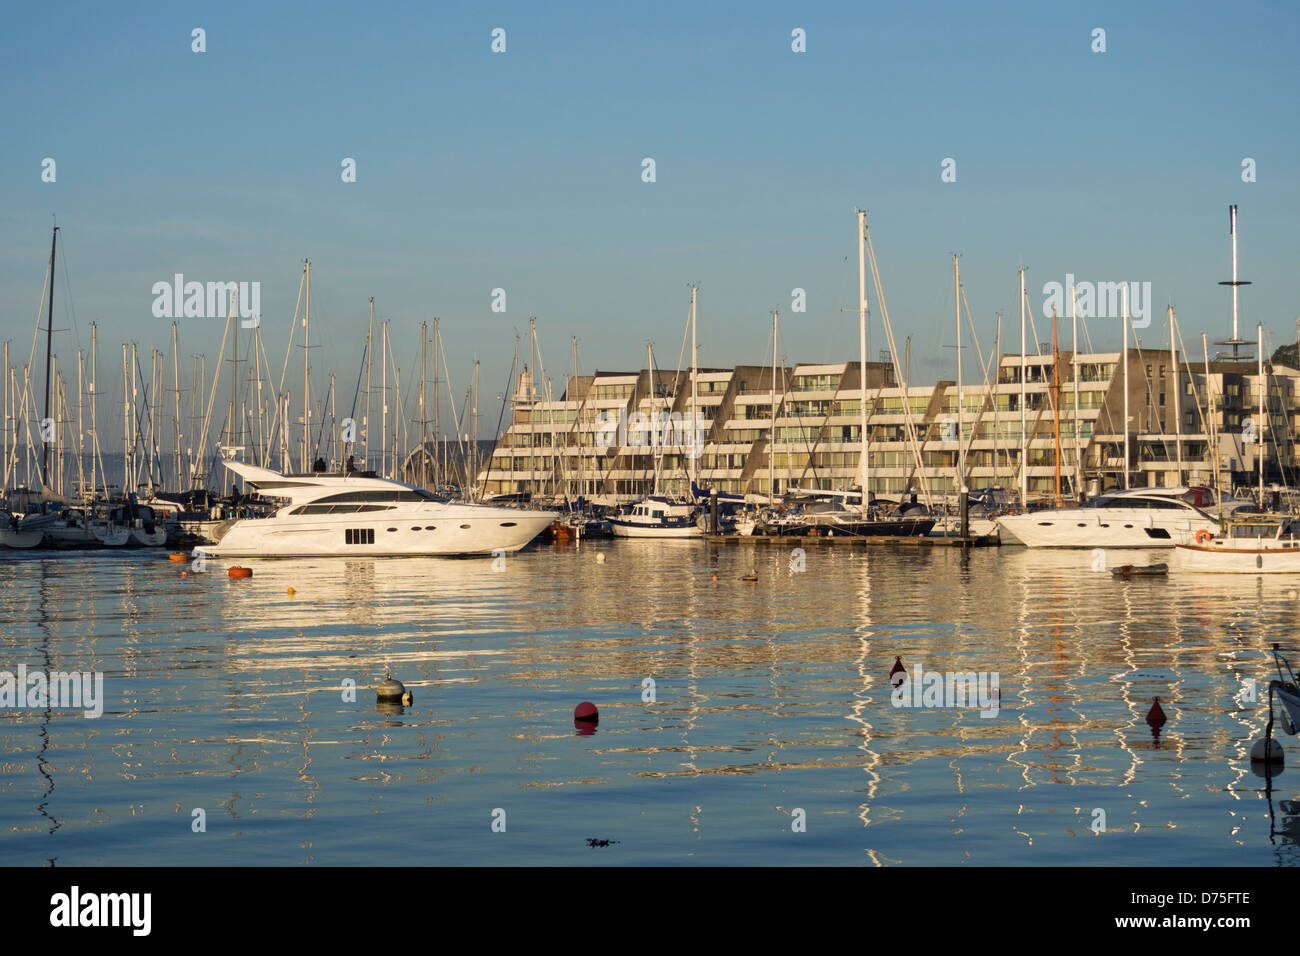 Motoryachten und Segelboote ankern vor Mayflower Marina, Plymouth, Devon UK Stockbild